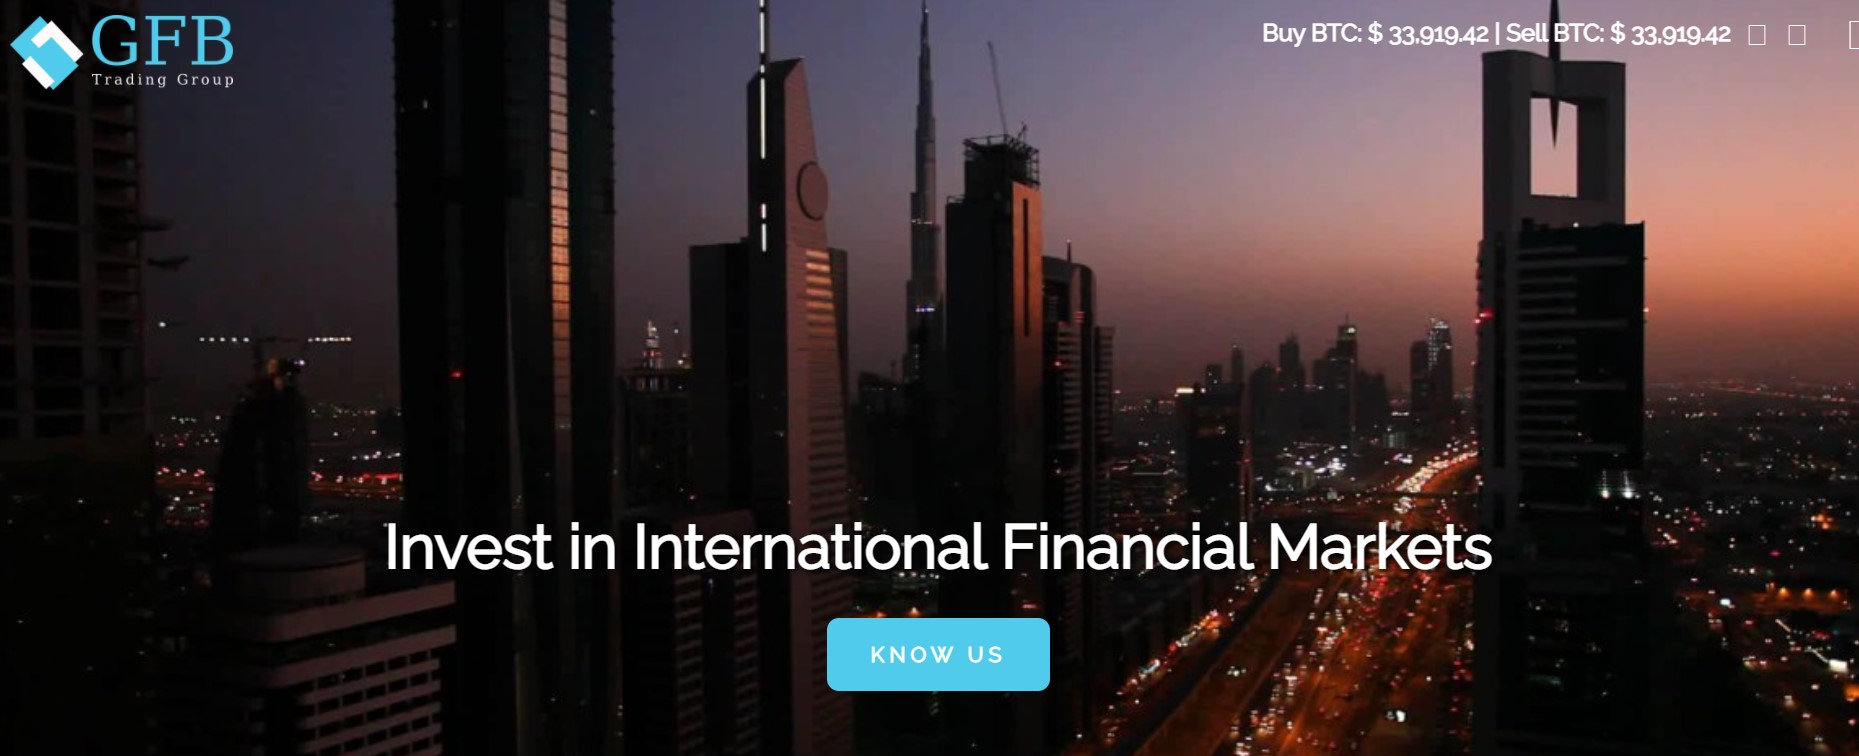 GFB Trading Group website